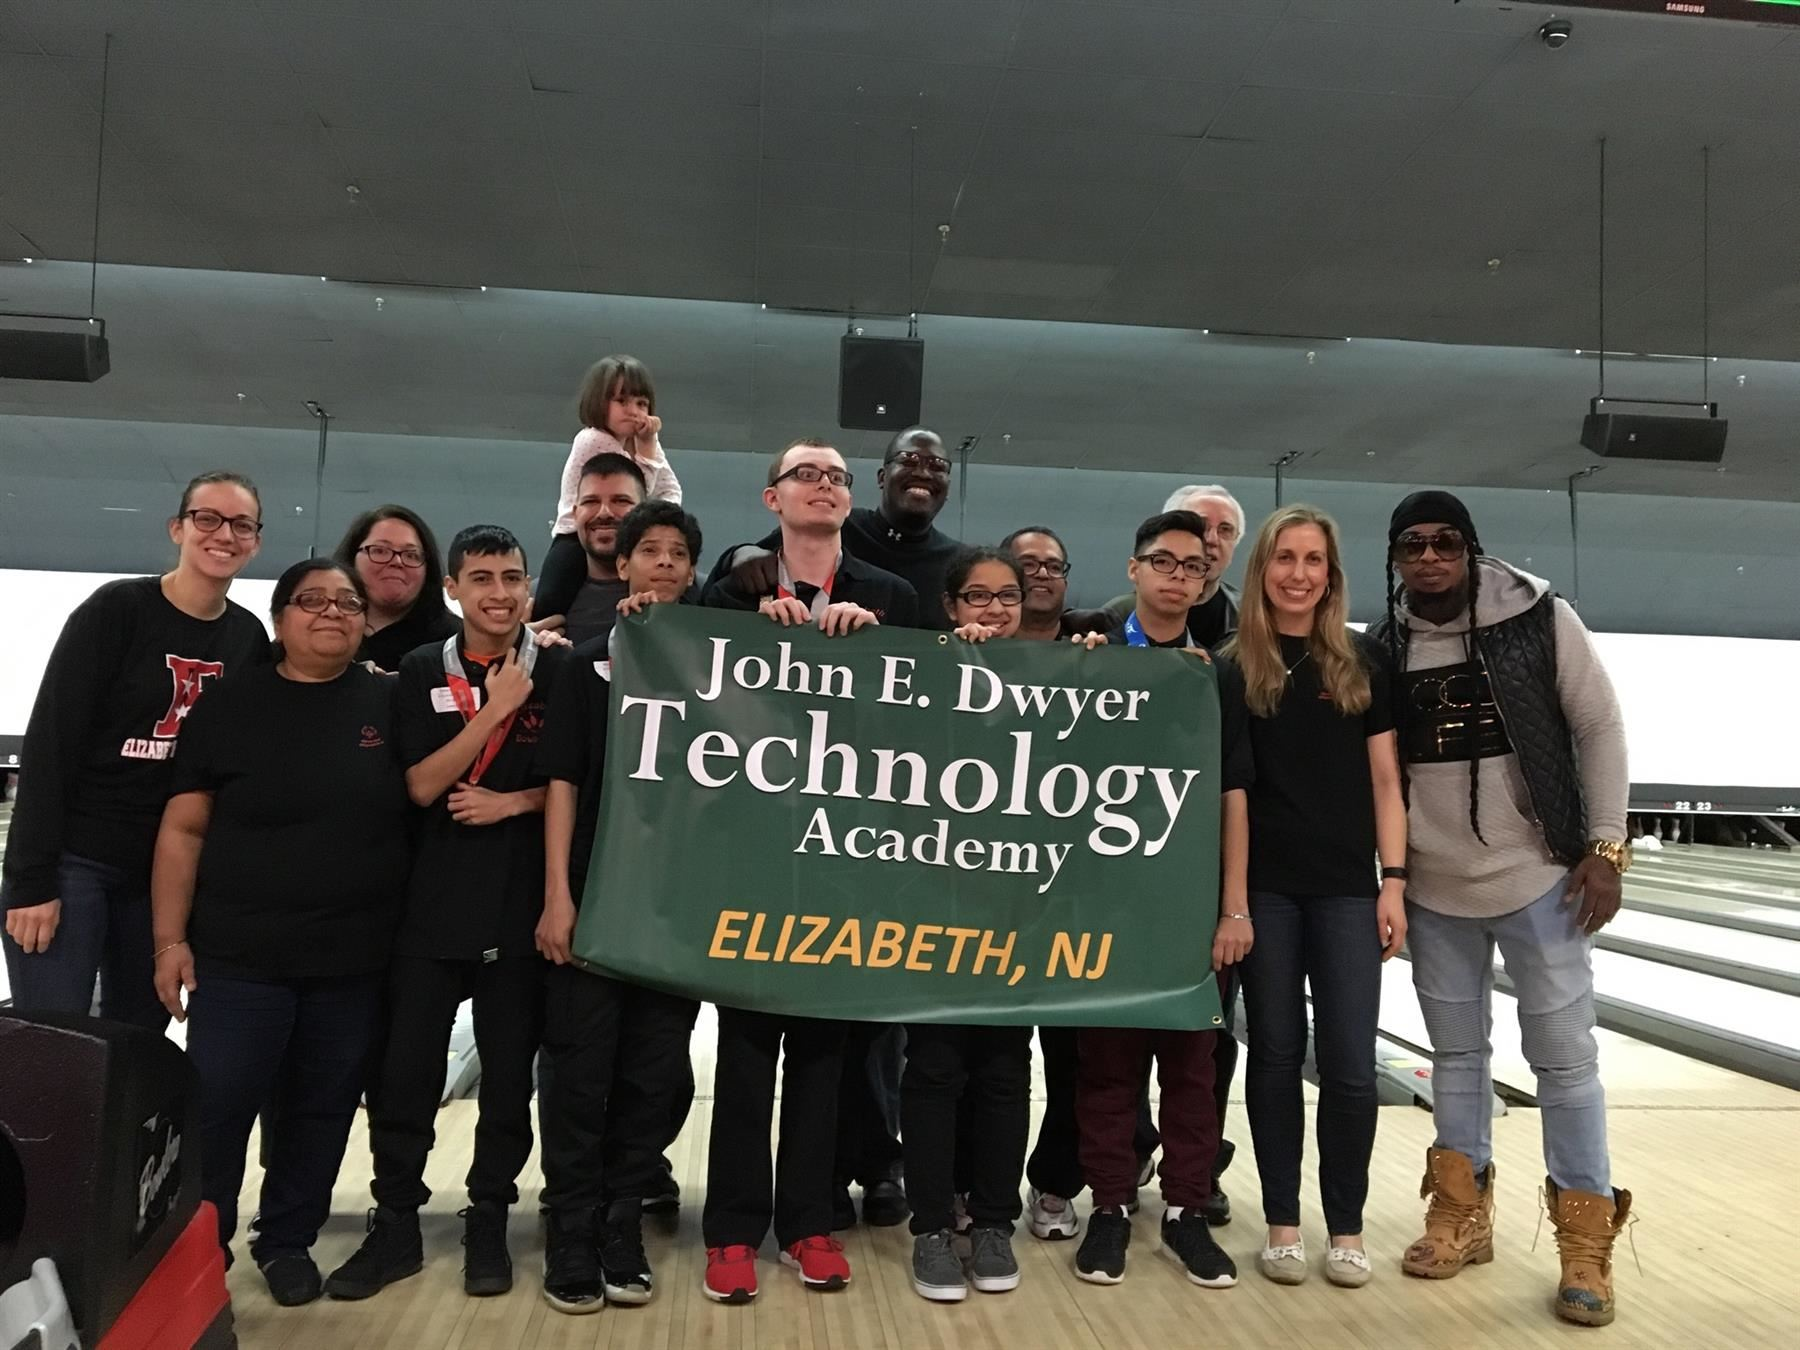 John E. Dwyer Technology Academy participated in the Spring Tournament Bowling Competition for the Special Olympics of New Jersey